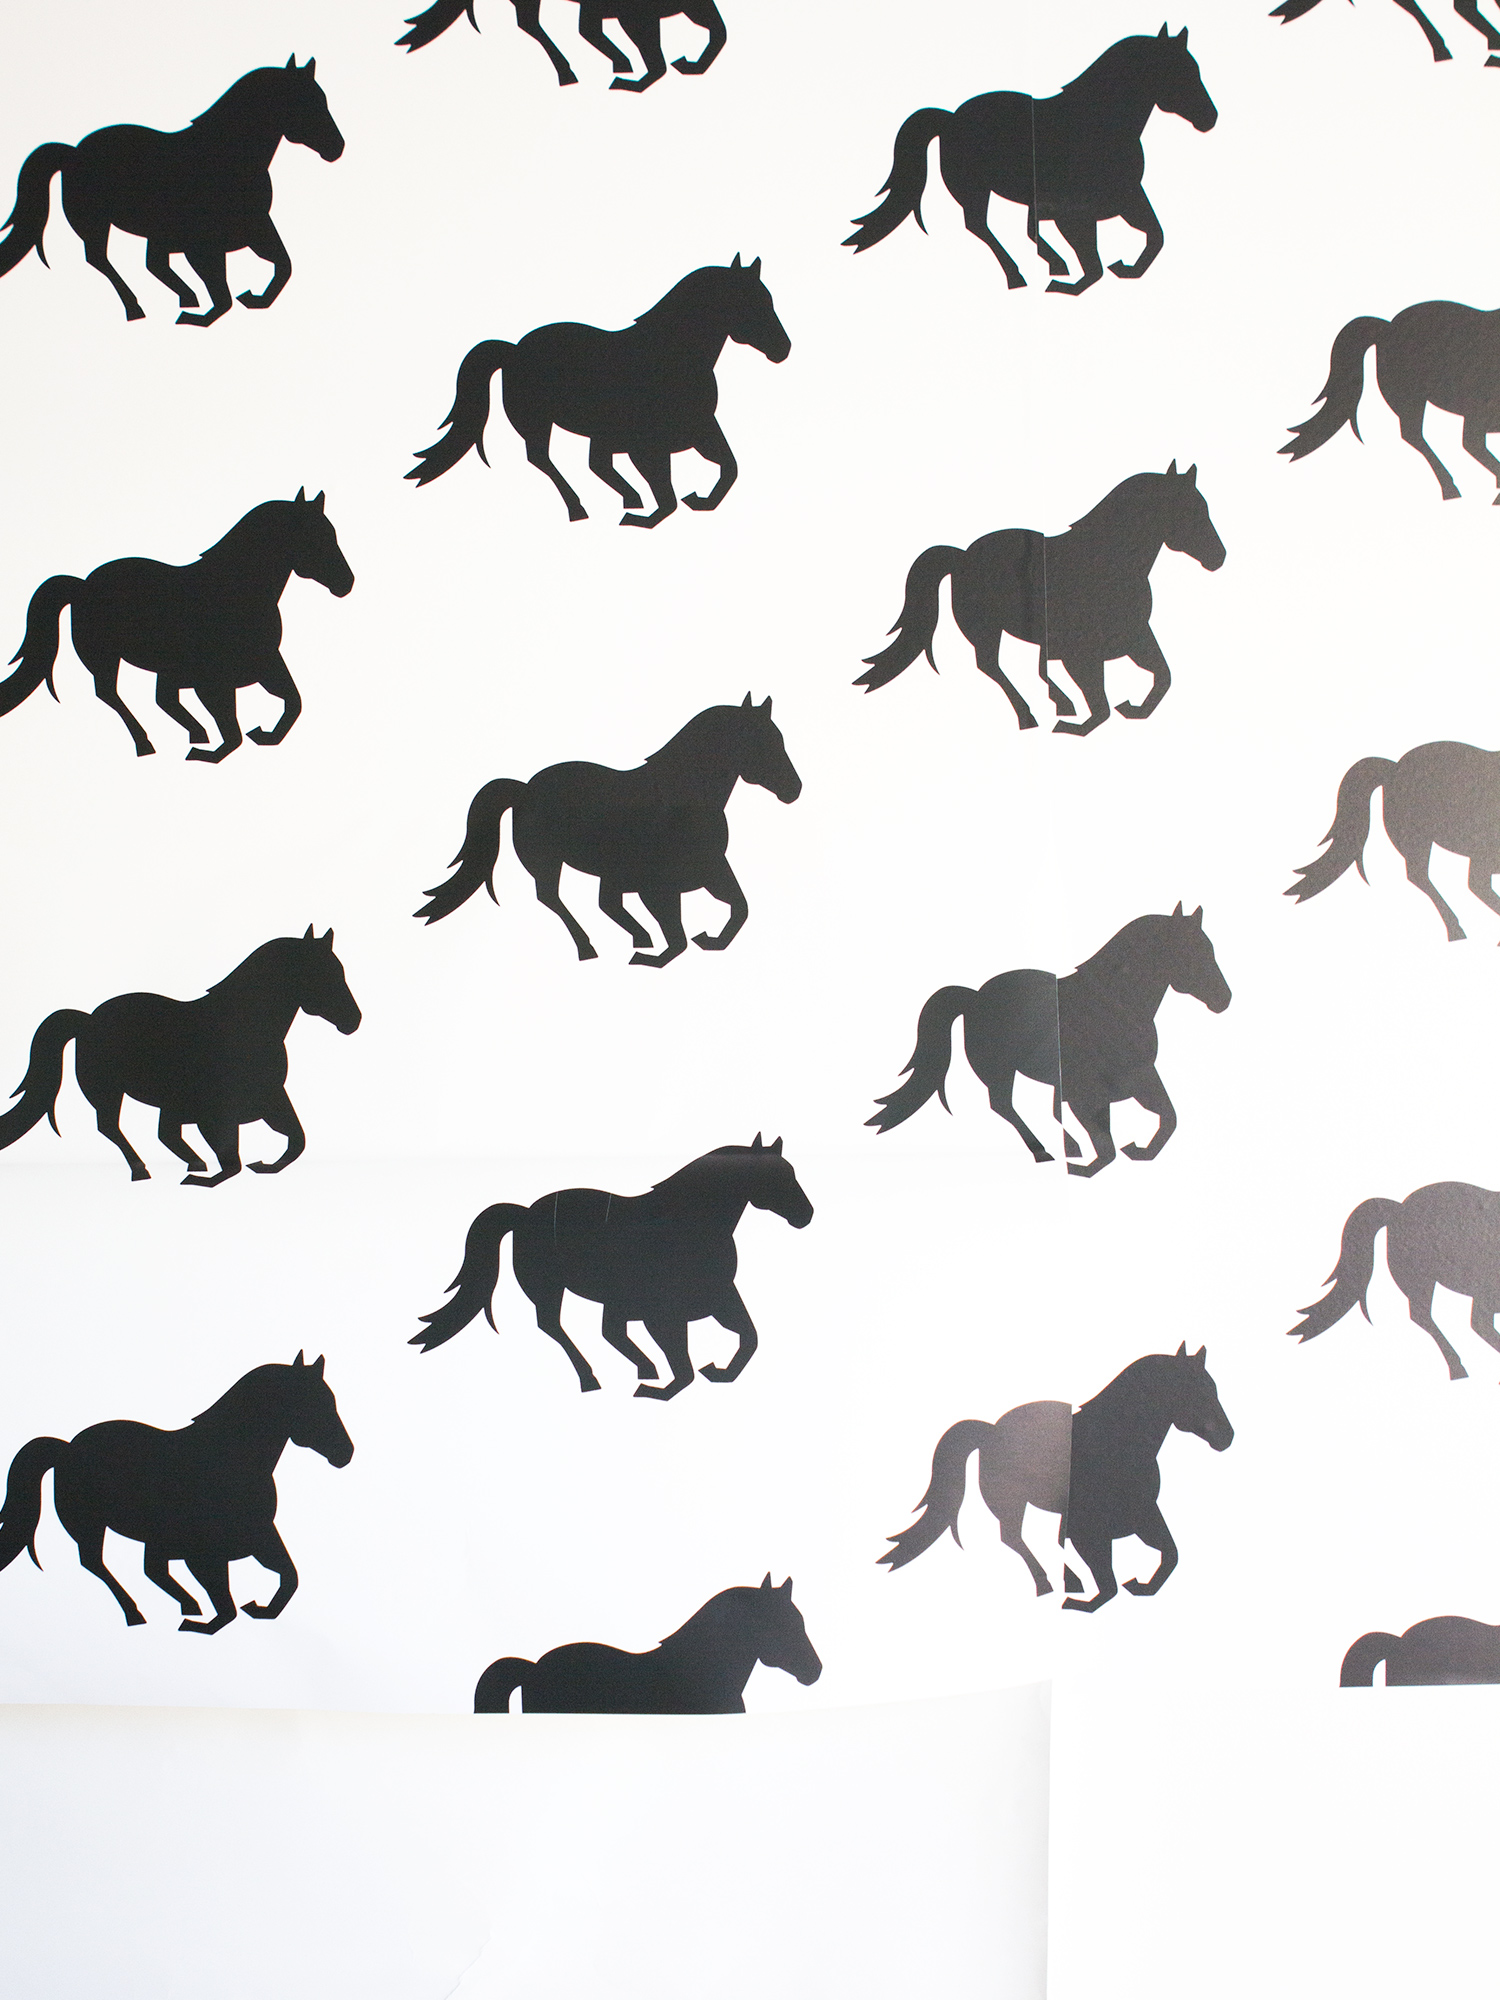 See how blogger Sarah Hearts gave her office a temporary update with a horse print peel and stick wallpaper! (Click through for tips and tricks on how to apply it)